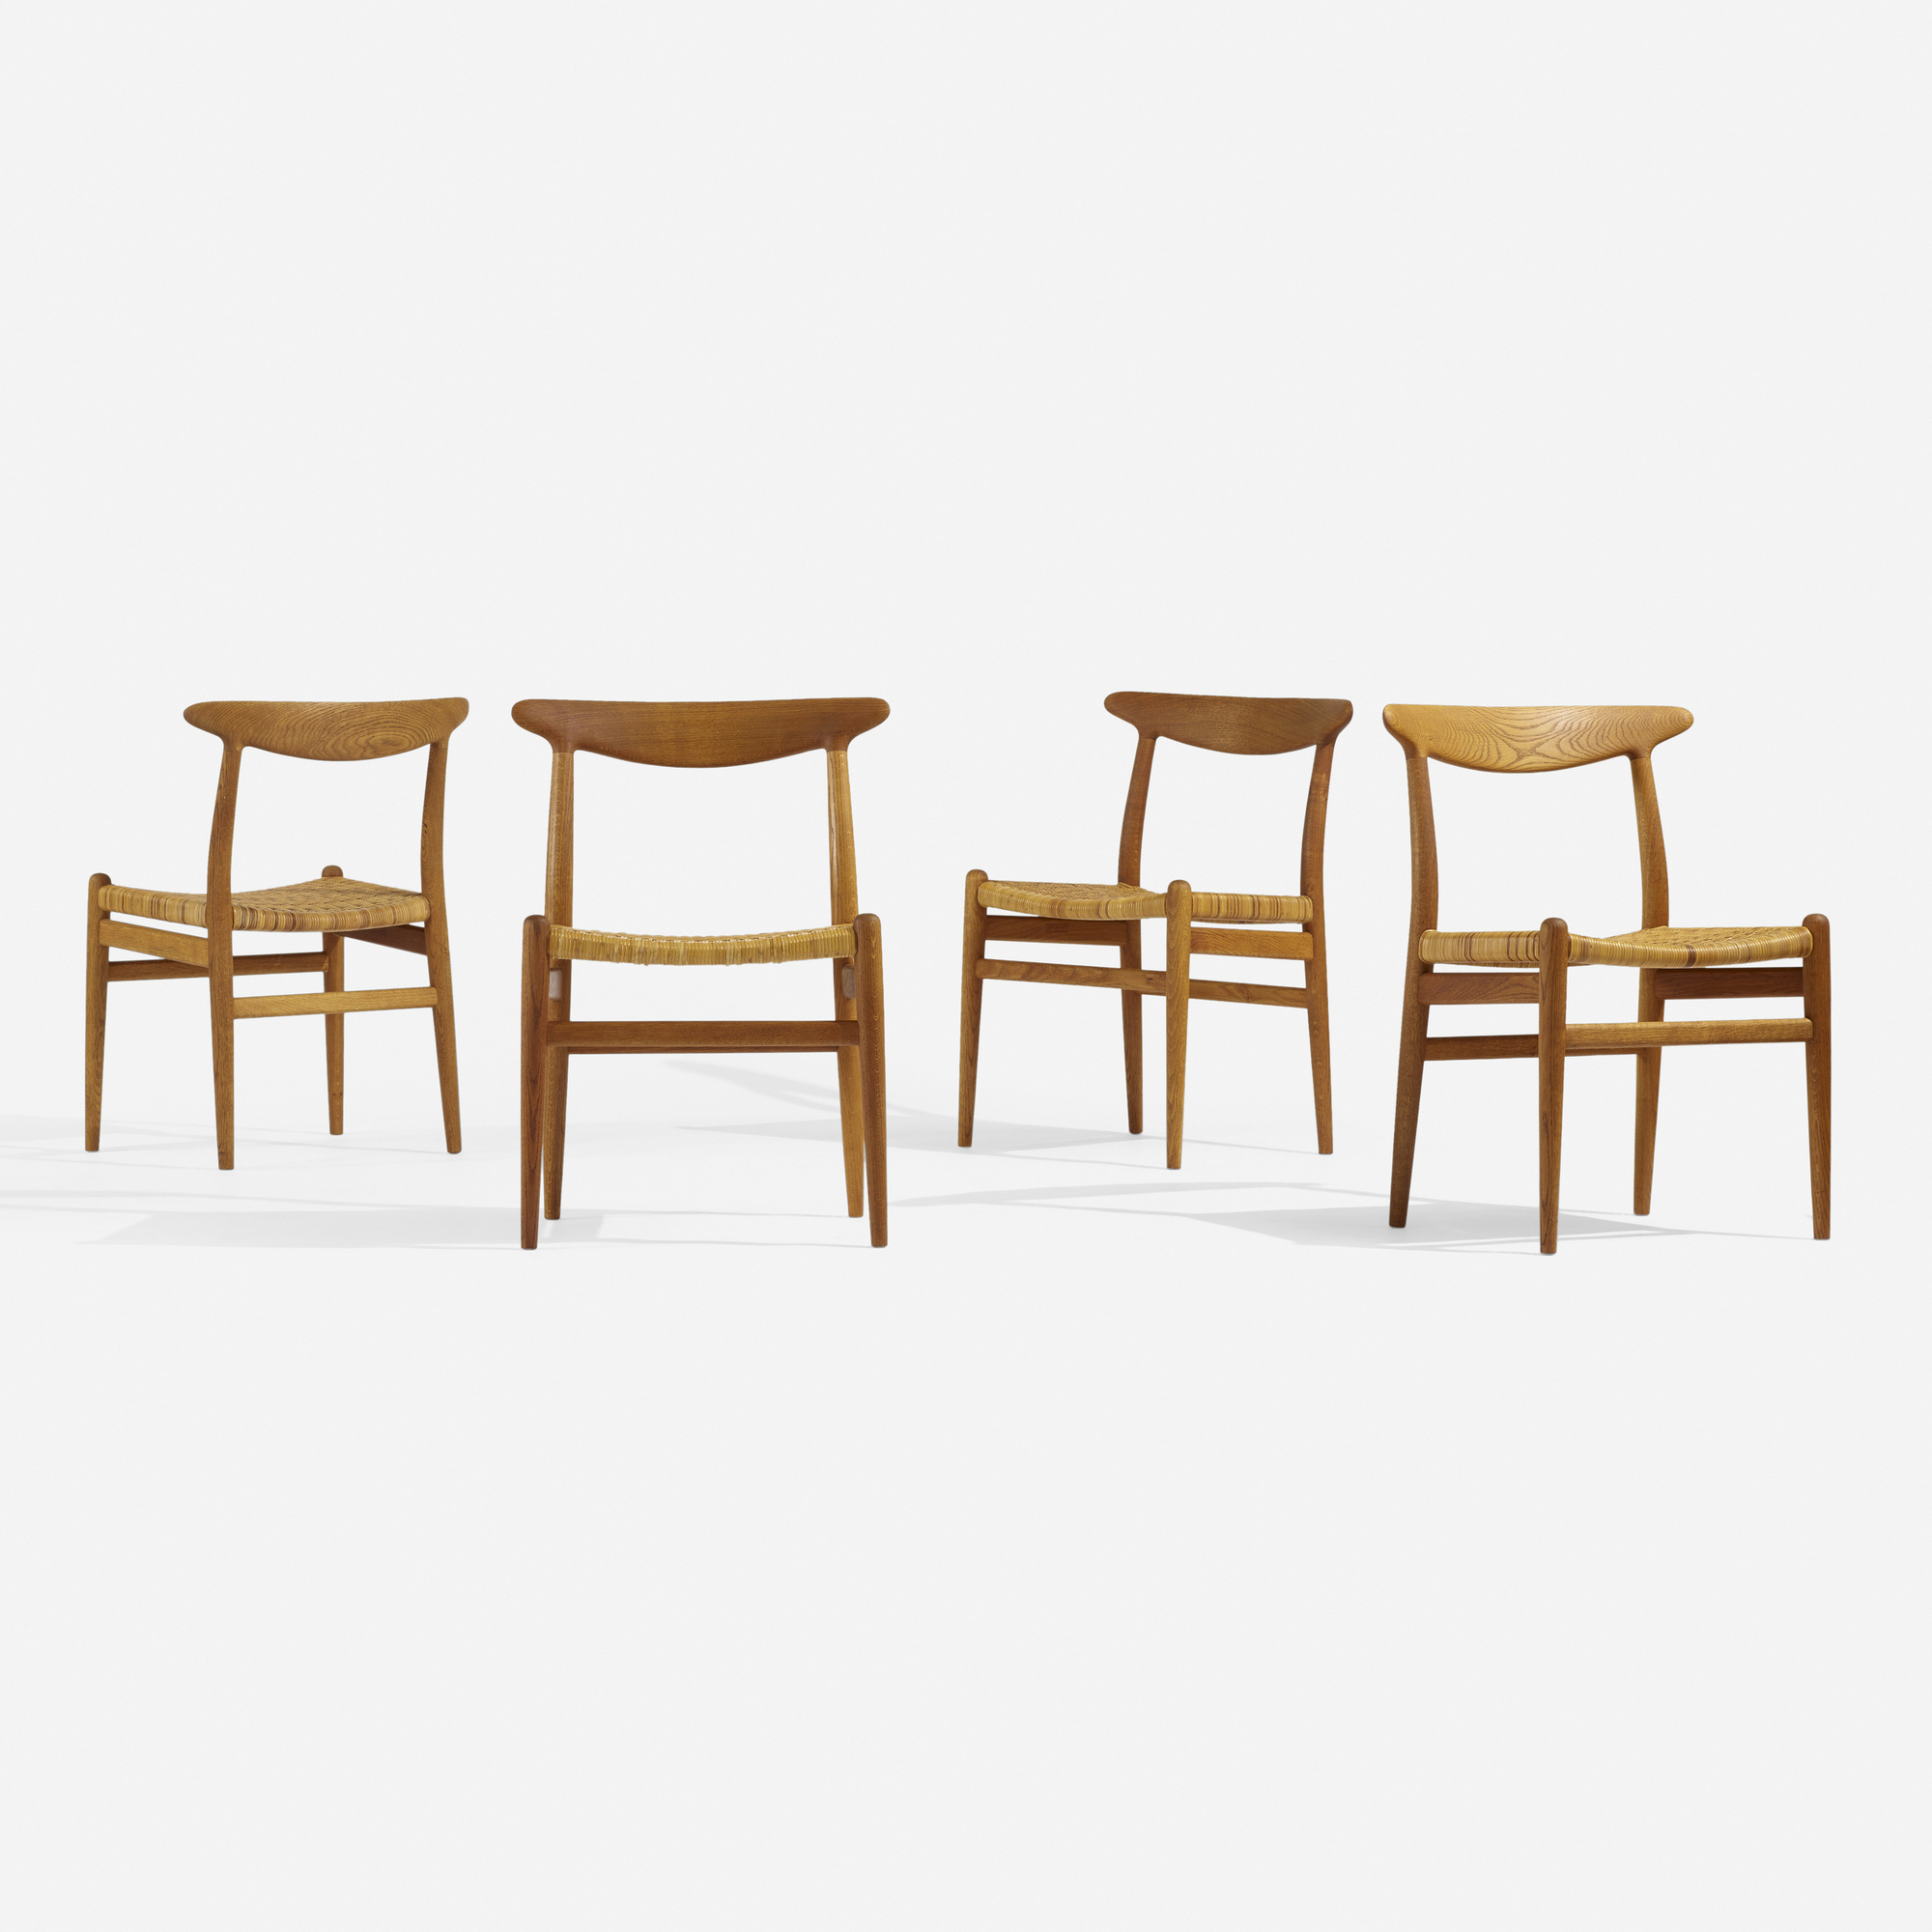 276: Hans J. Wegner / dining chairs, set of four (1 of 4)